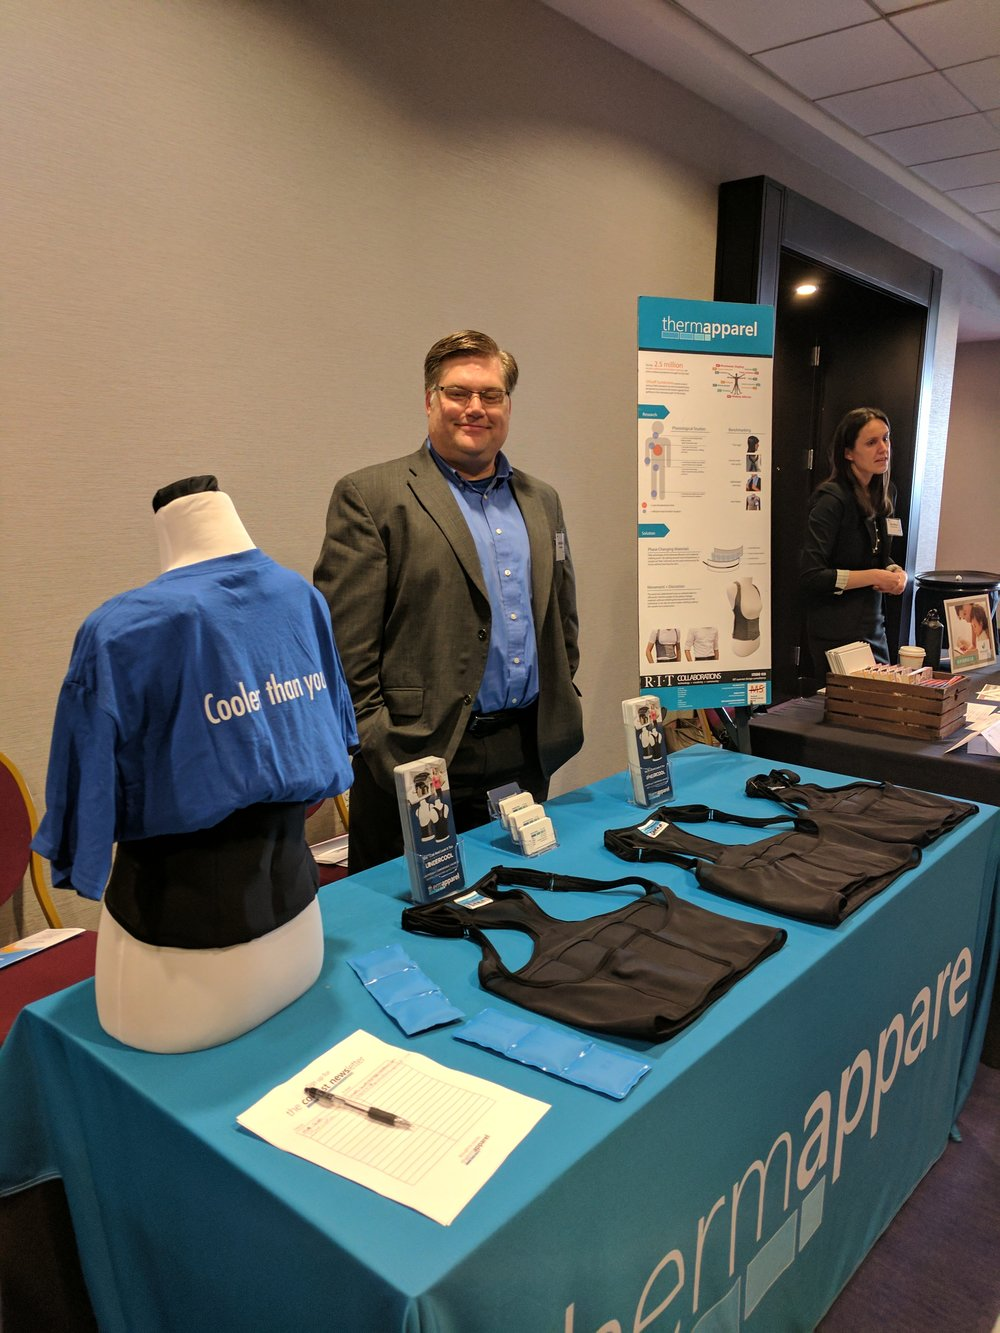 Kurtis at ThermApparel's table at the Rochester Venture Challenge